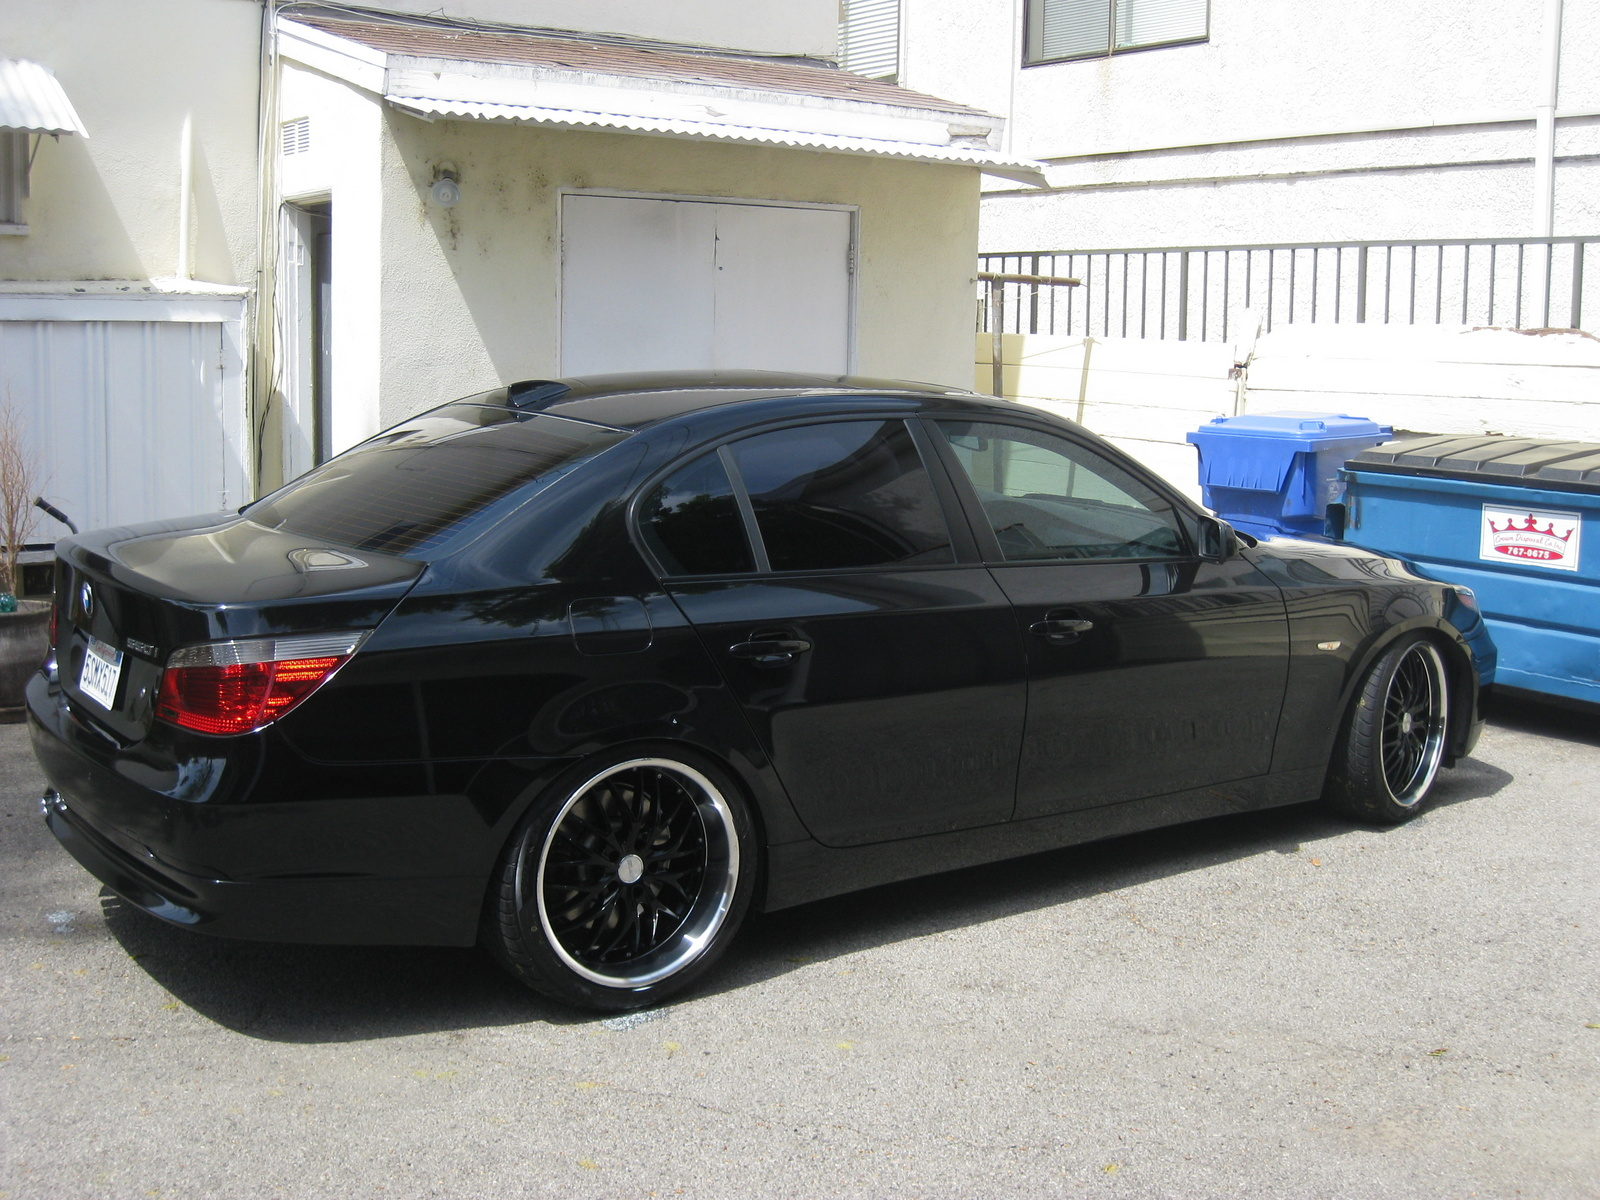 bmw 5 series 550i 2006 technical specifications interior and exterior photo. Black Bedroom Furniture Sets. Home Design Ideas